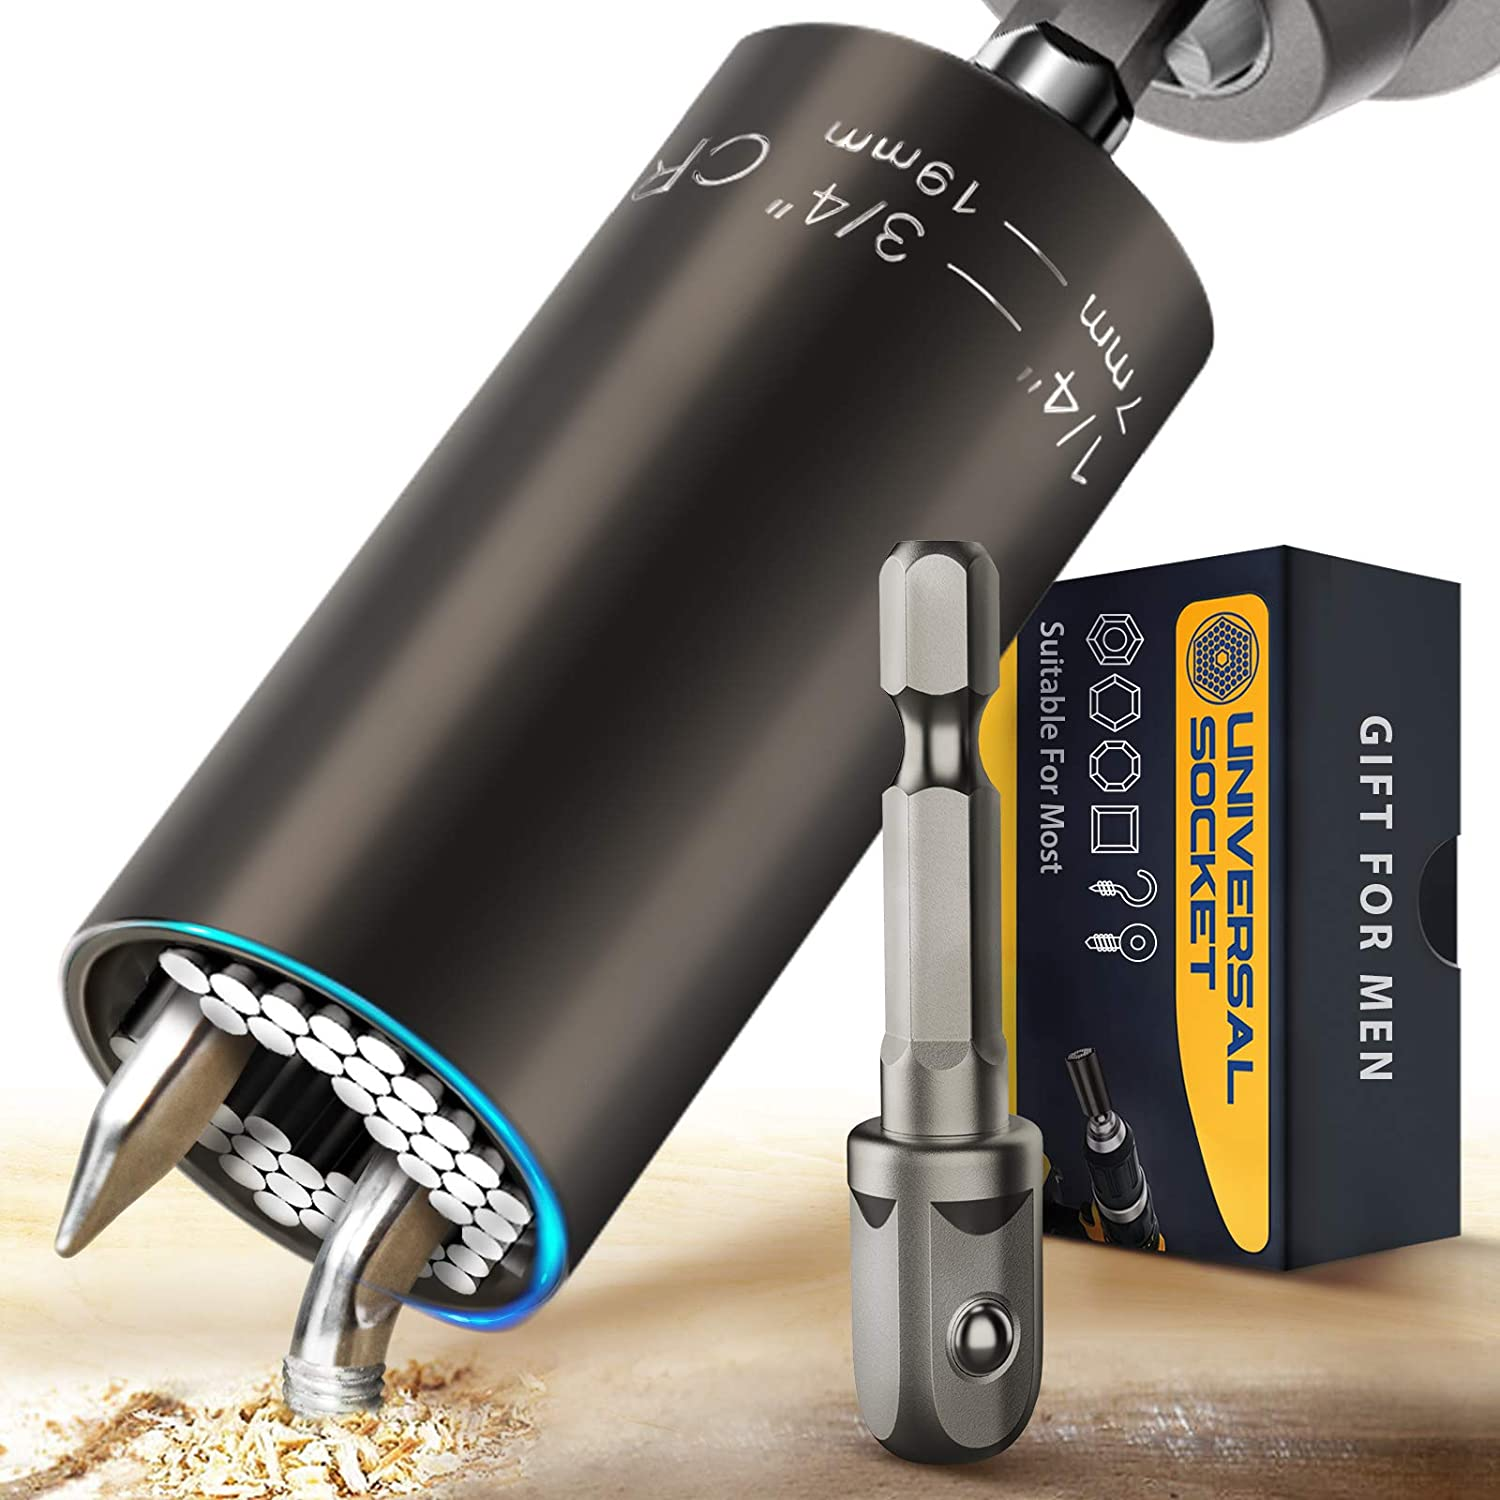 Universal Socket Stocking Stuffers for Men, Super Socket Tools Gifts for Dad/Men/Women, Grip Gadget with Power Drill Adapter Set for 1/4'' - 3/4'', Unique Tool Gift for Husband, Boyfriend on Christmas